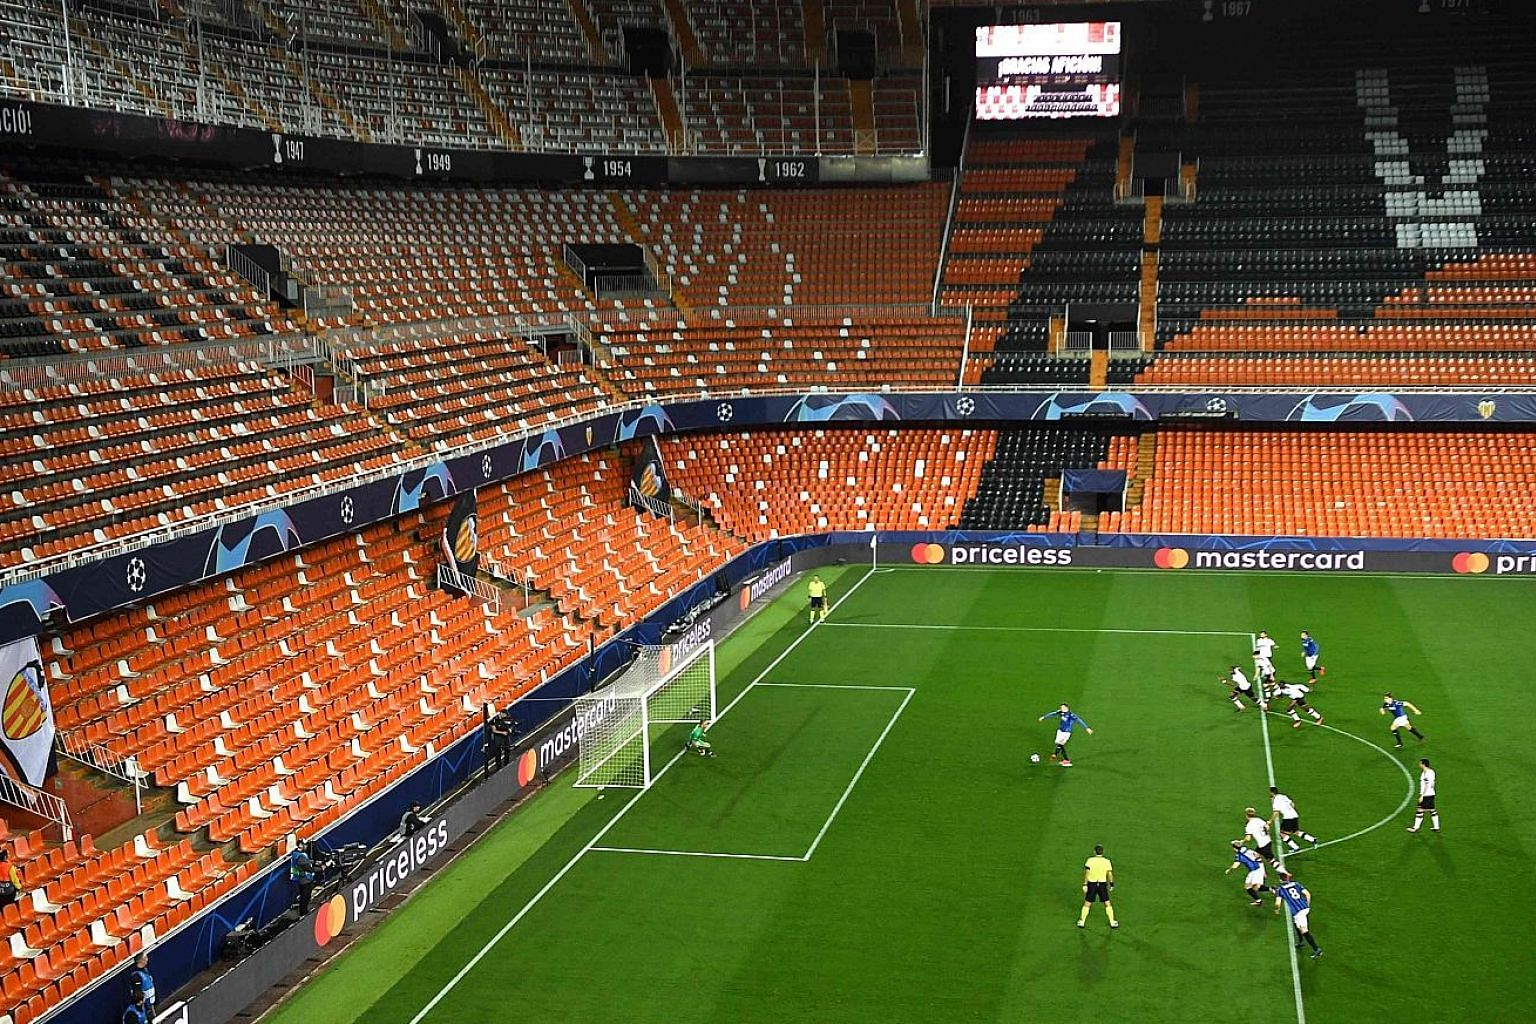 Atalanta's Josip Ilicic scoring one of his four goals against Valencia in a 4-3 win at the Spanish team's Mestalla stadium during a closed-door Champions League match on March 10. Only four of the eight round-of-16 ties were completed before Europe's